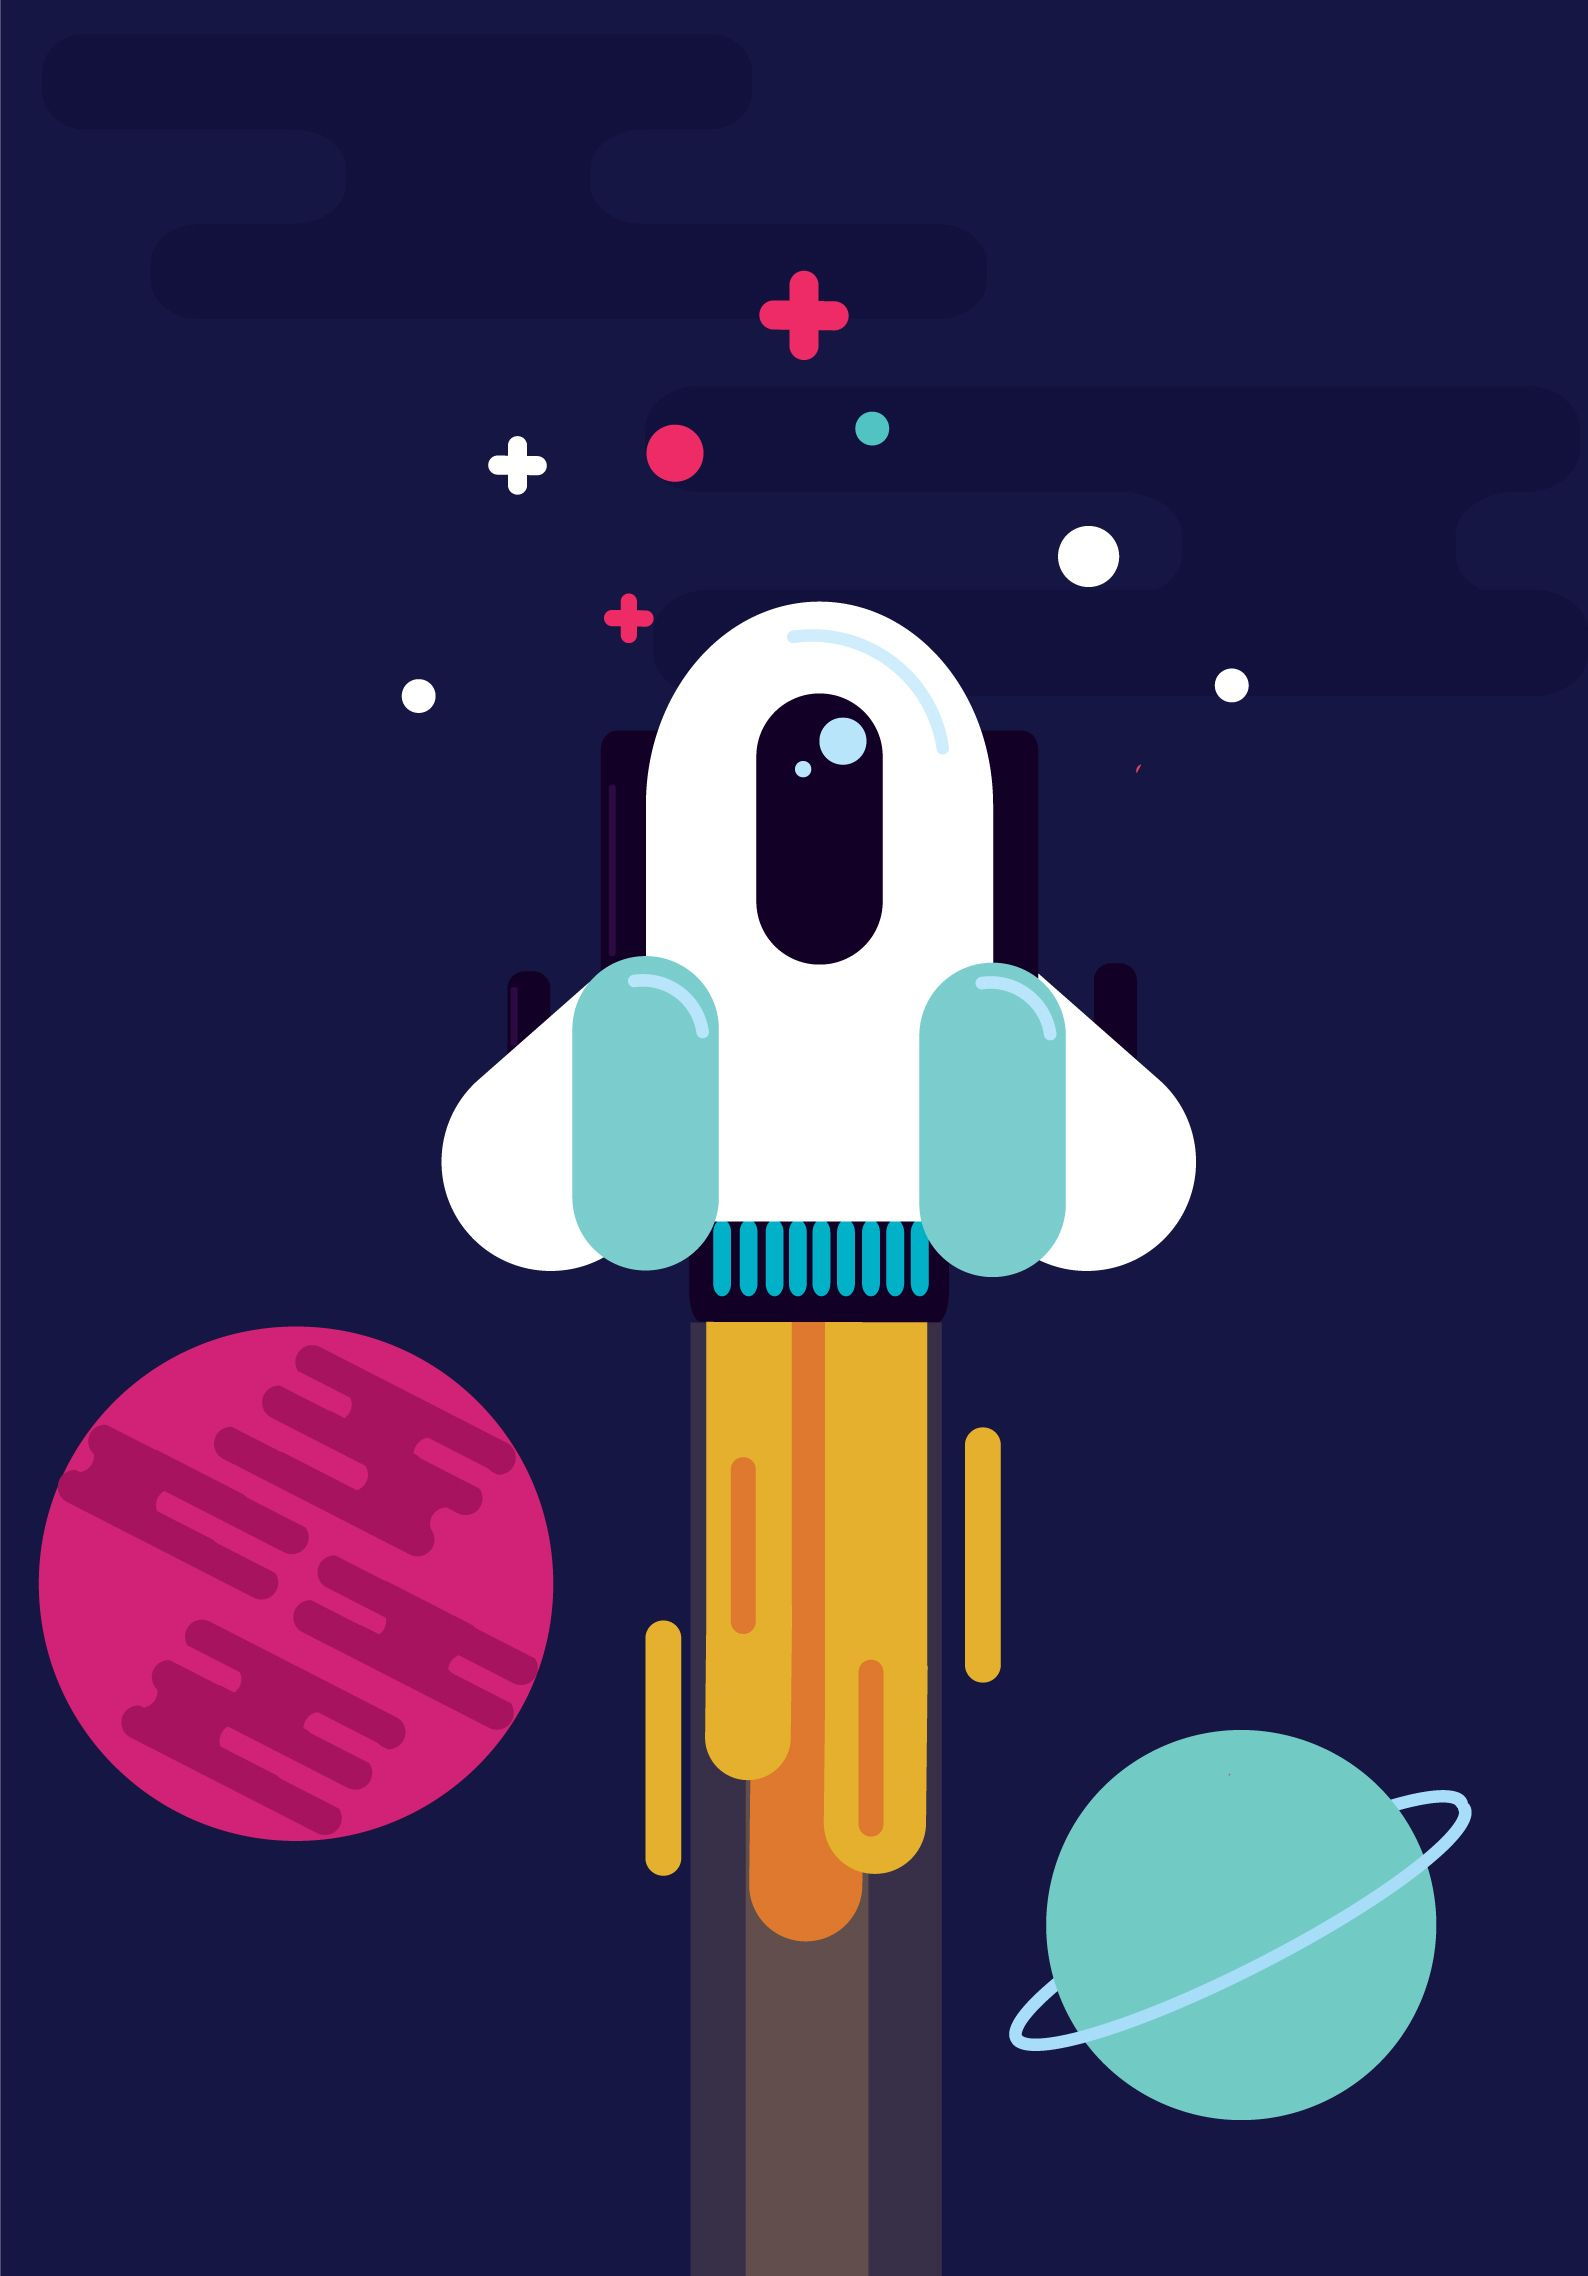 Galaxy with planets, rocket and a lonely astronaut all done